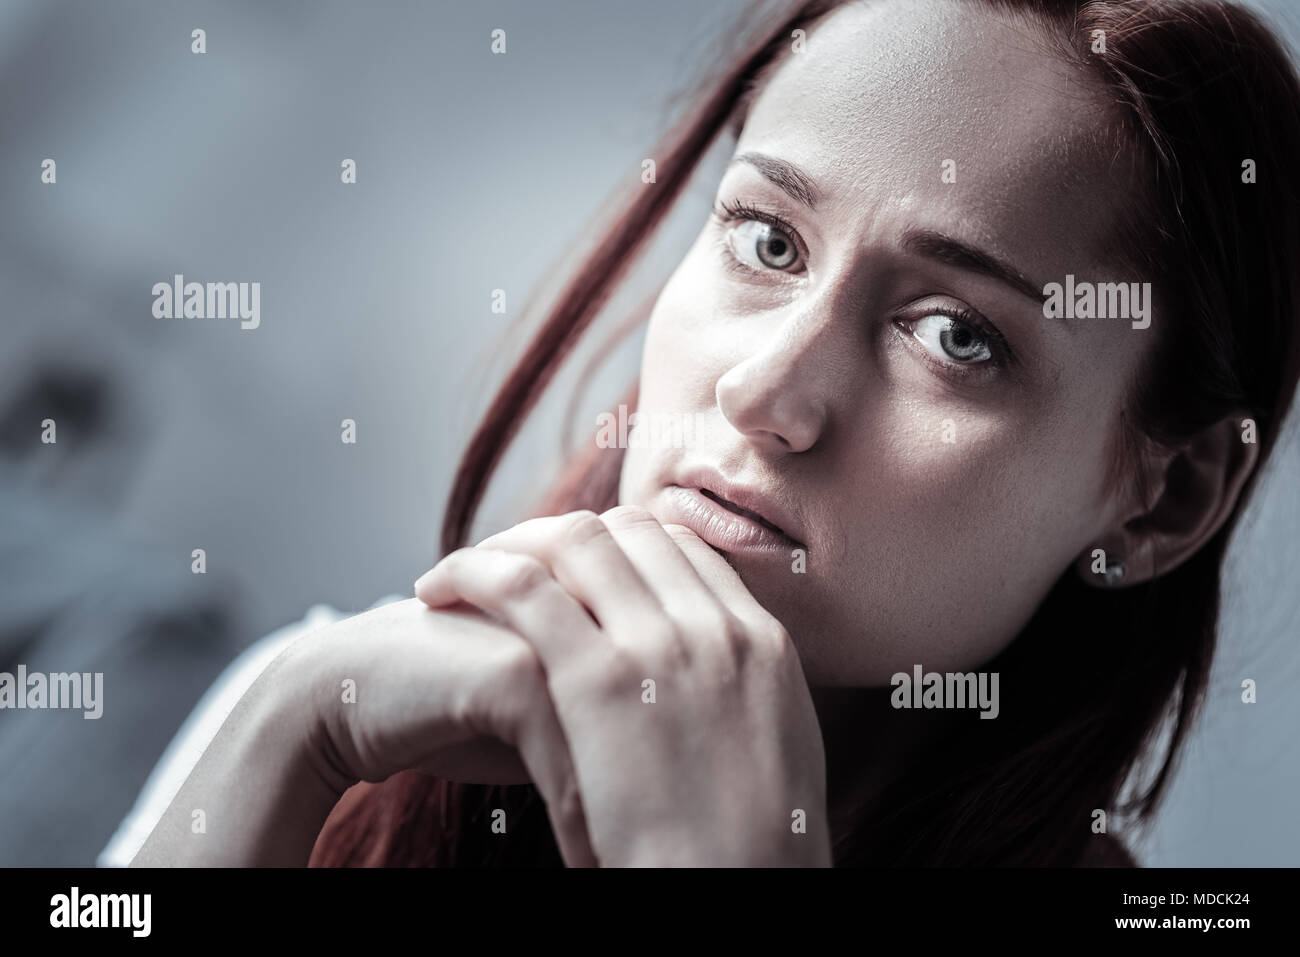 Mournful painful woman immersing in depression - Stock Image